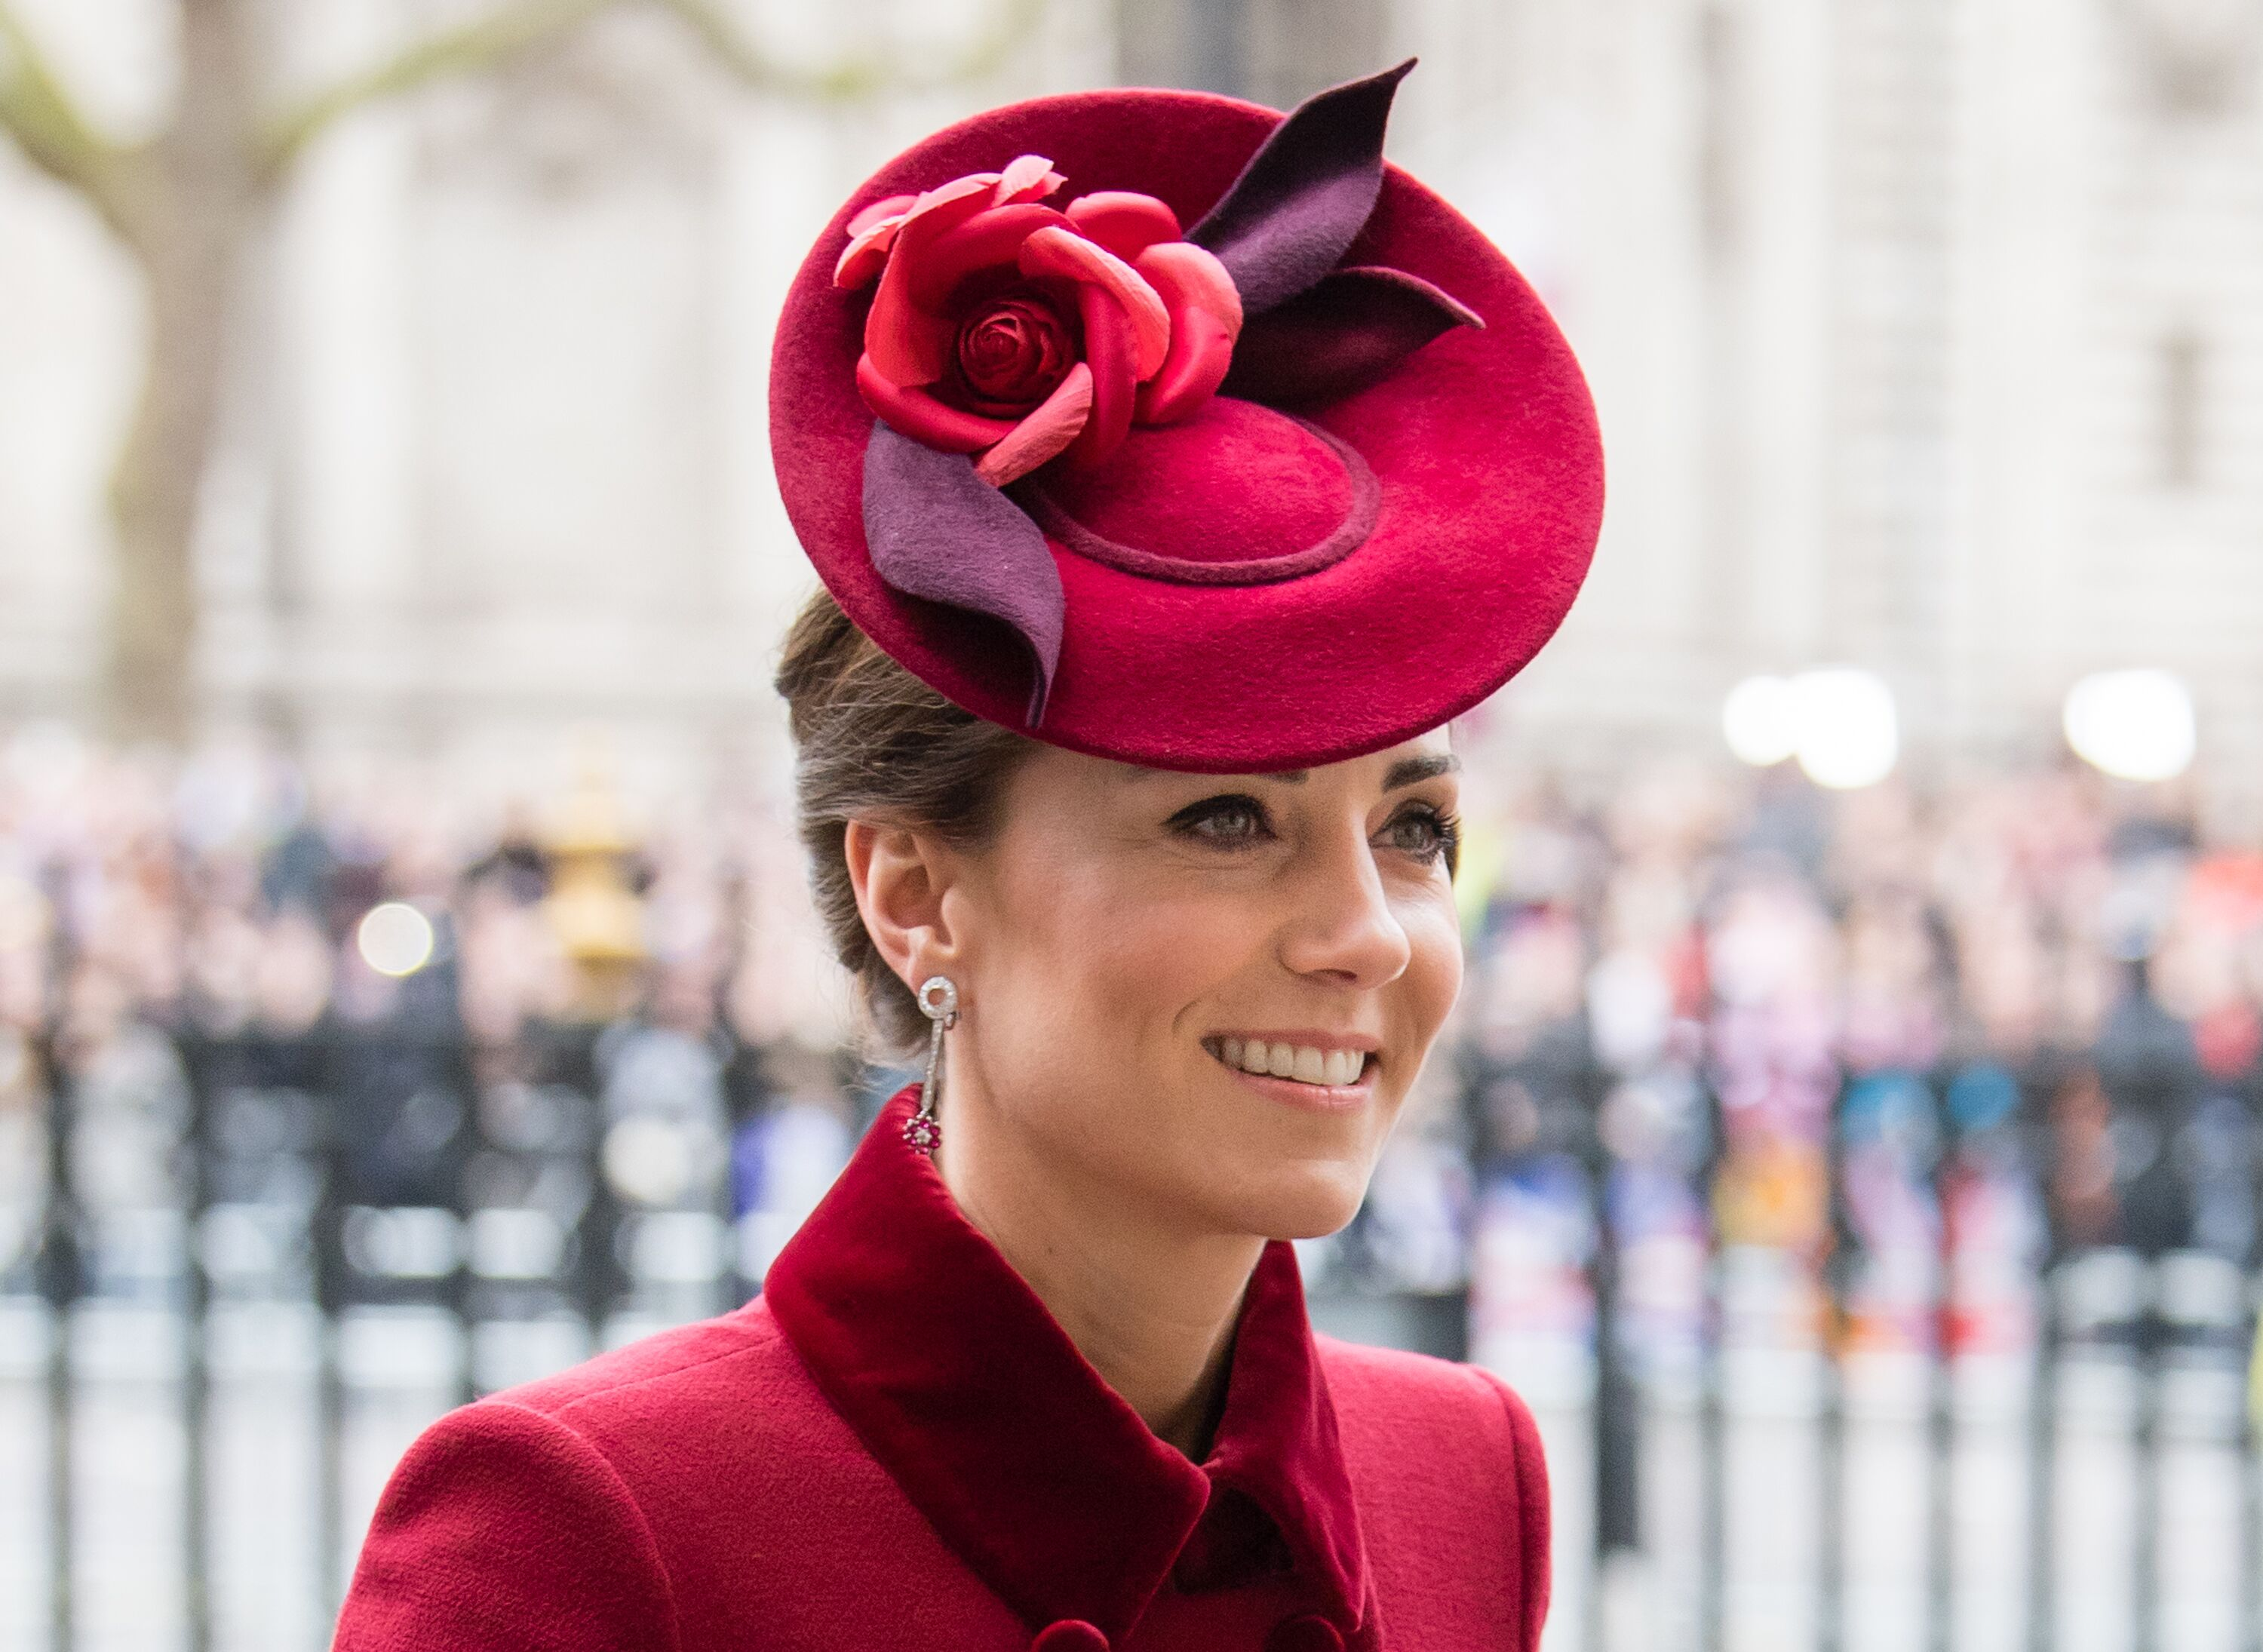 Kate Middleton attends the Commonwealth Day Service 2020 on March 09, 2020 in London, England. | Source: Getty Images